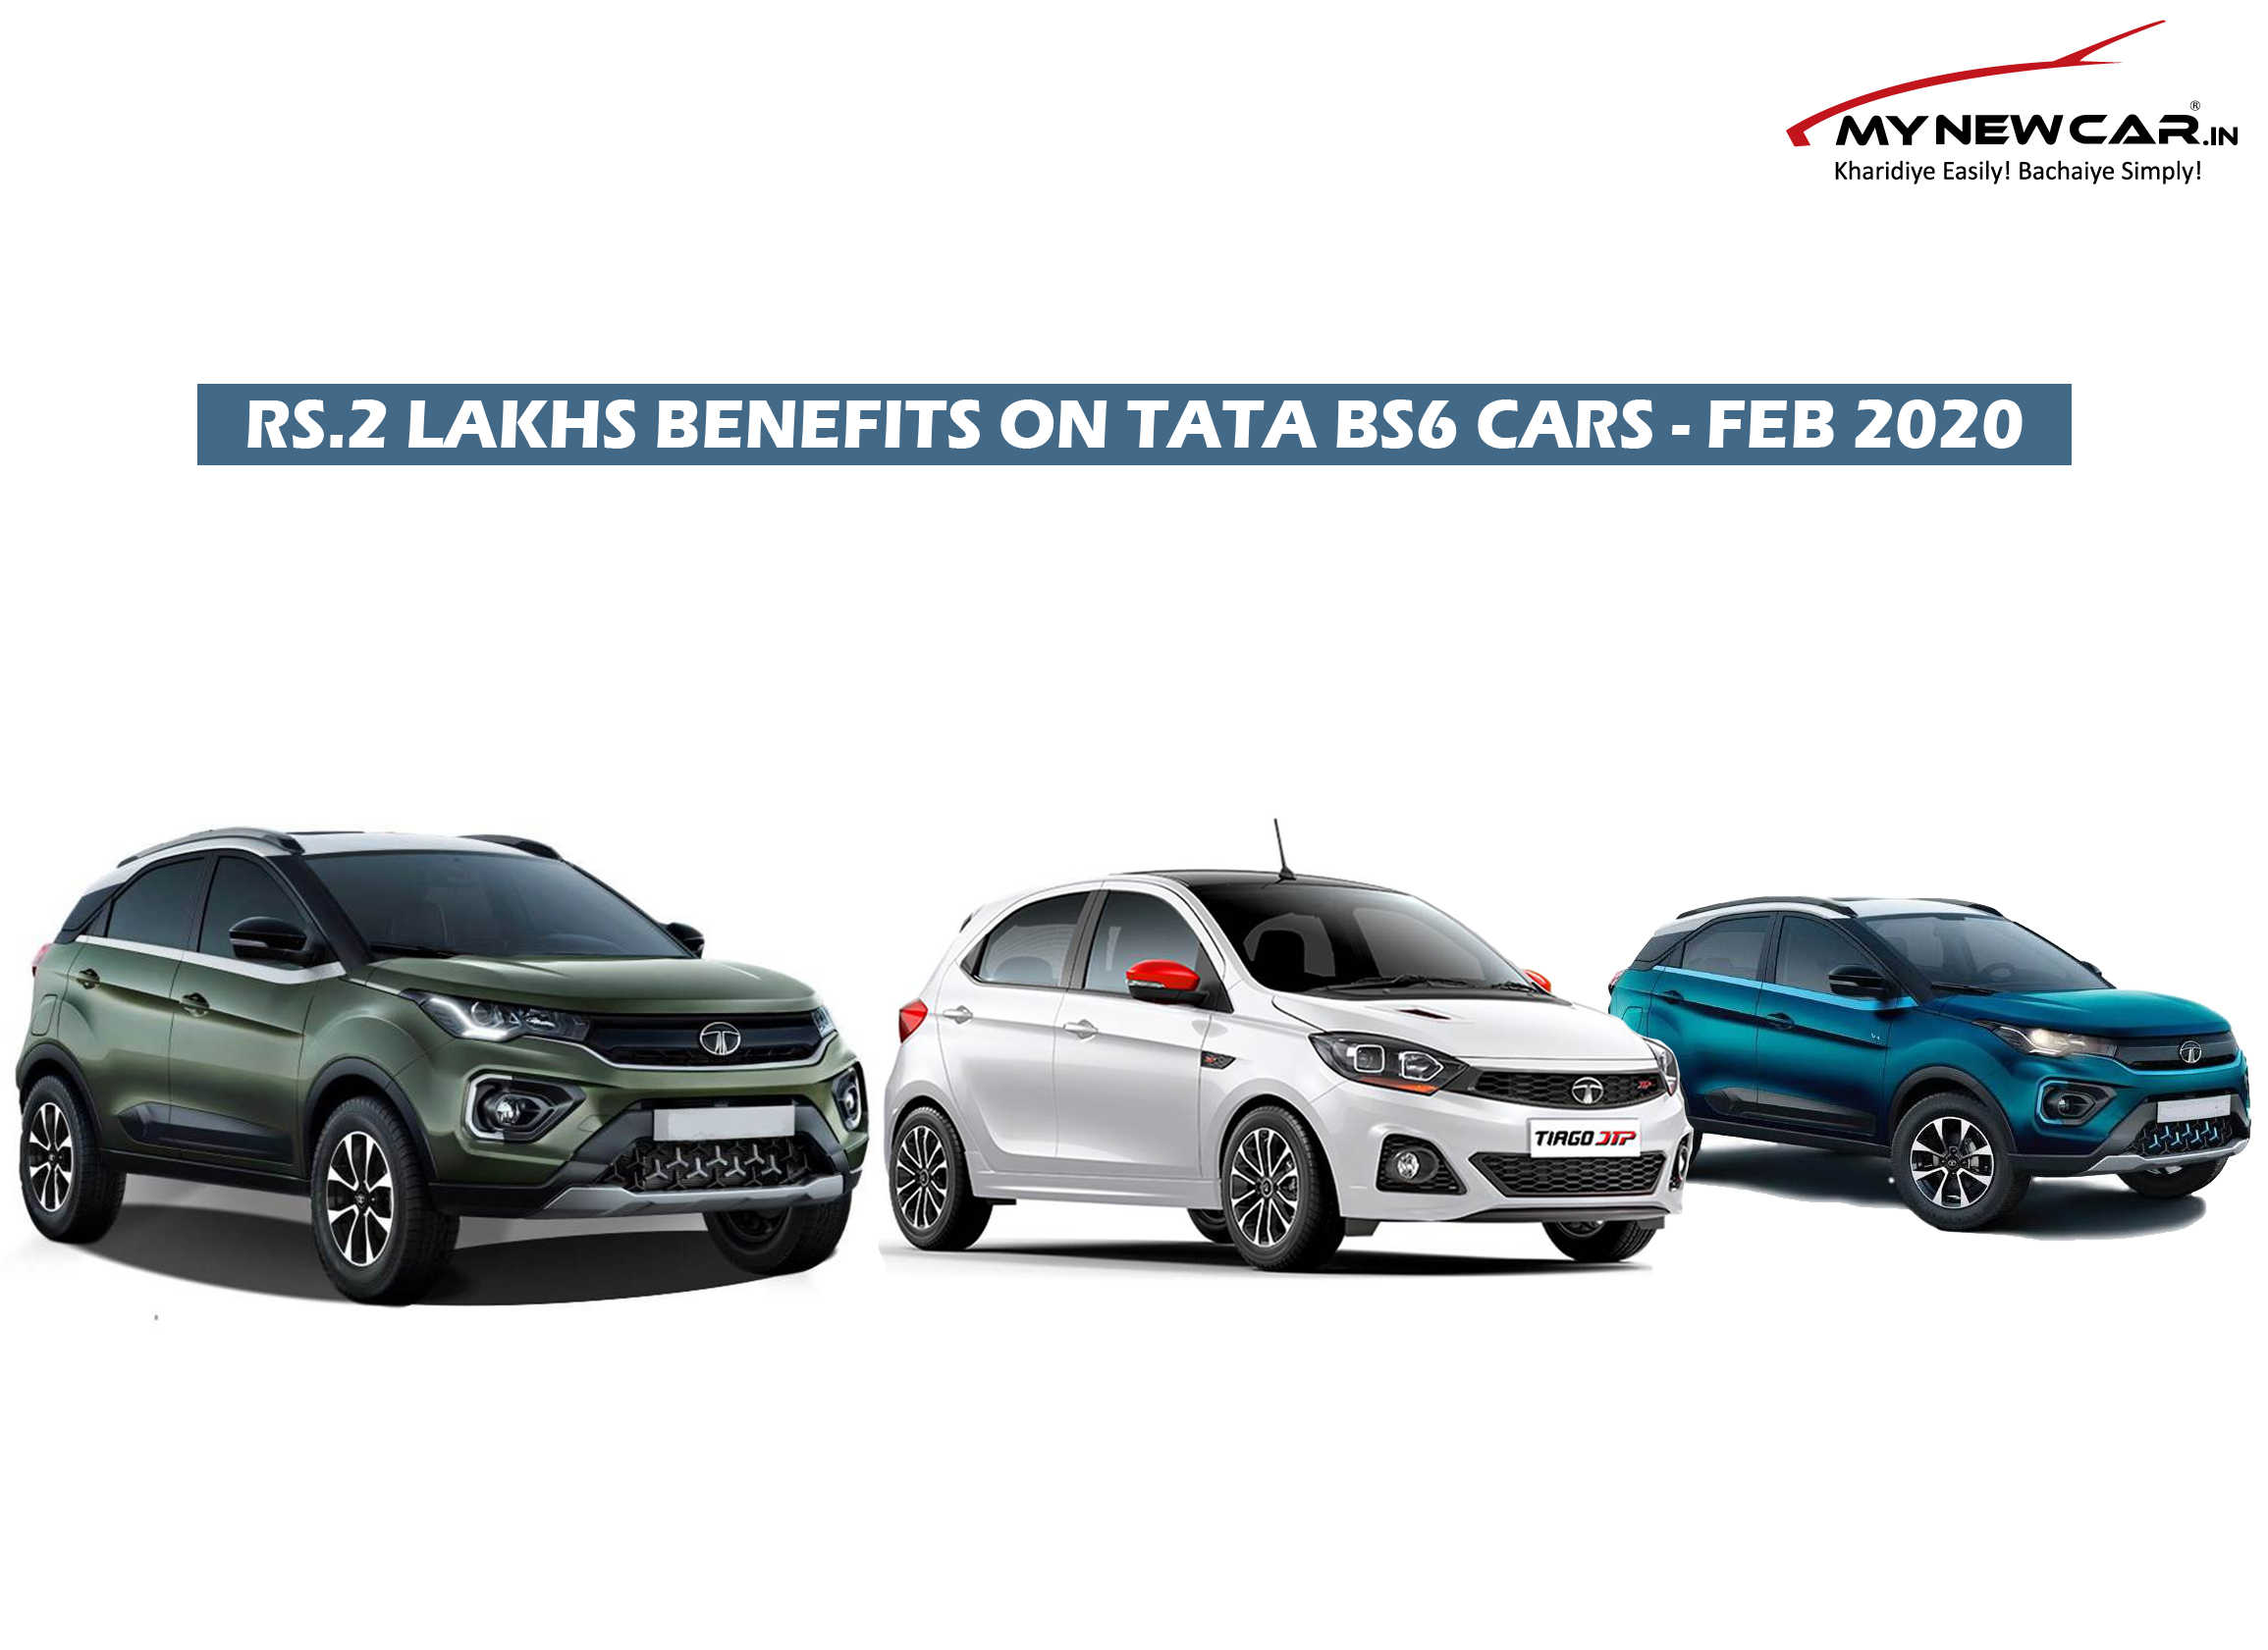 Rs.2 Lakhs Benefits on Tata BS6 Cars - Feb 2020